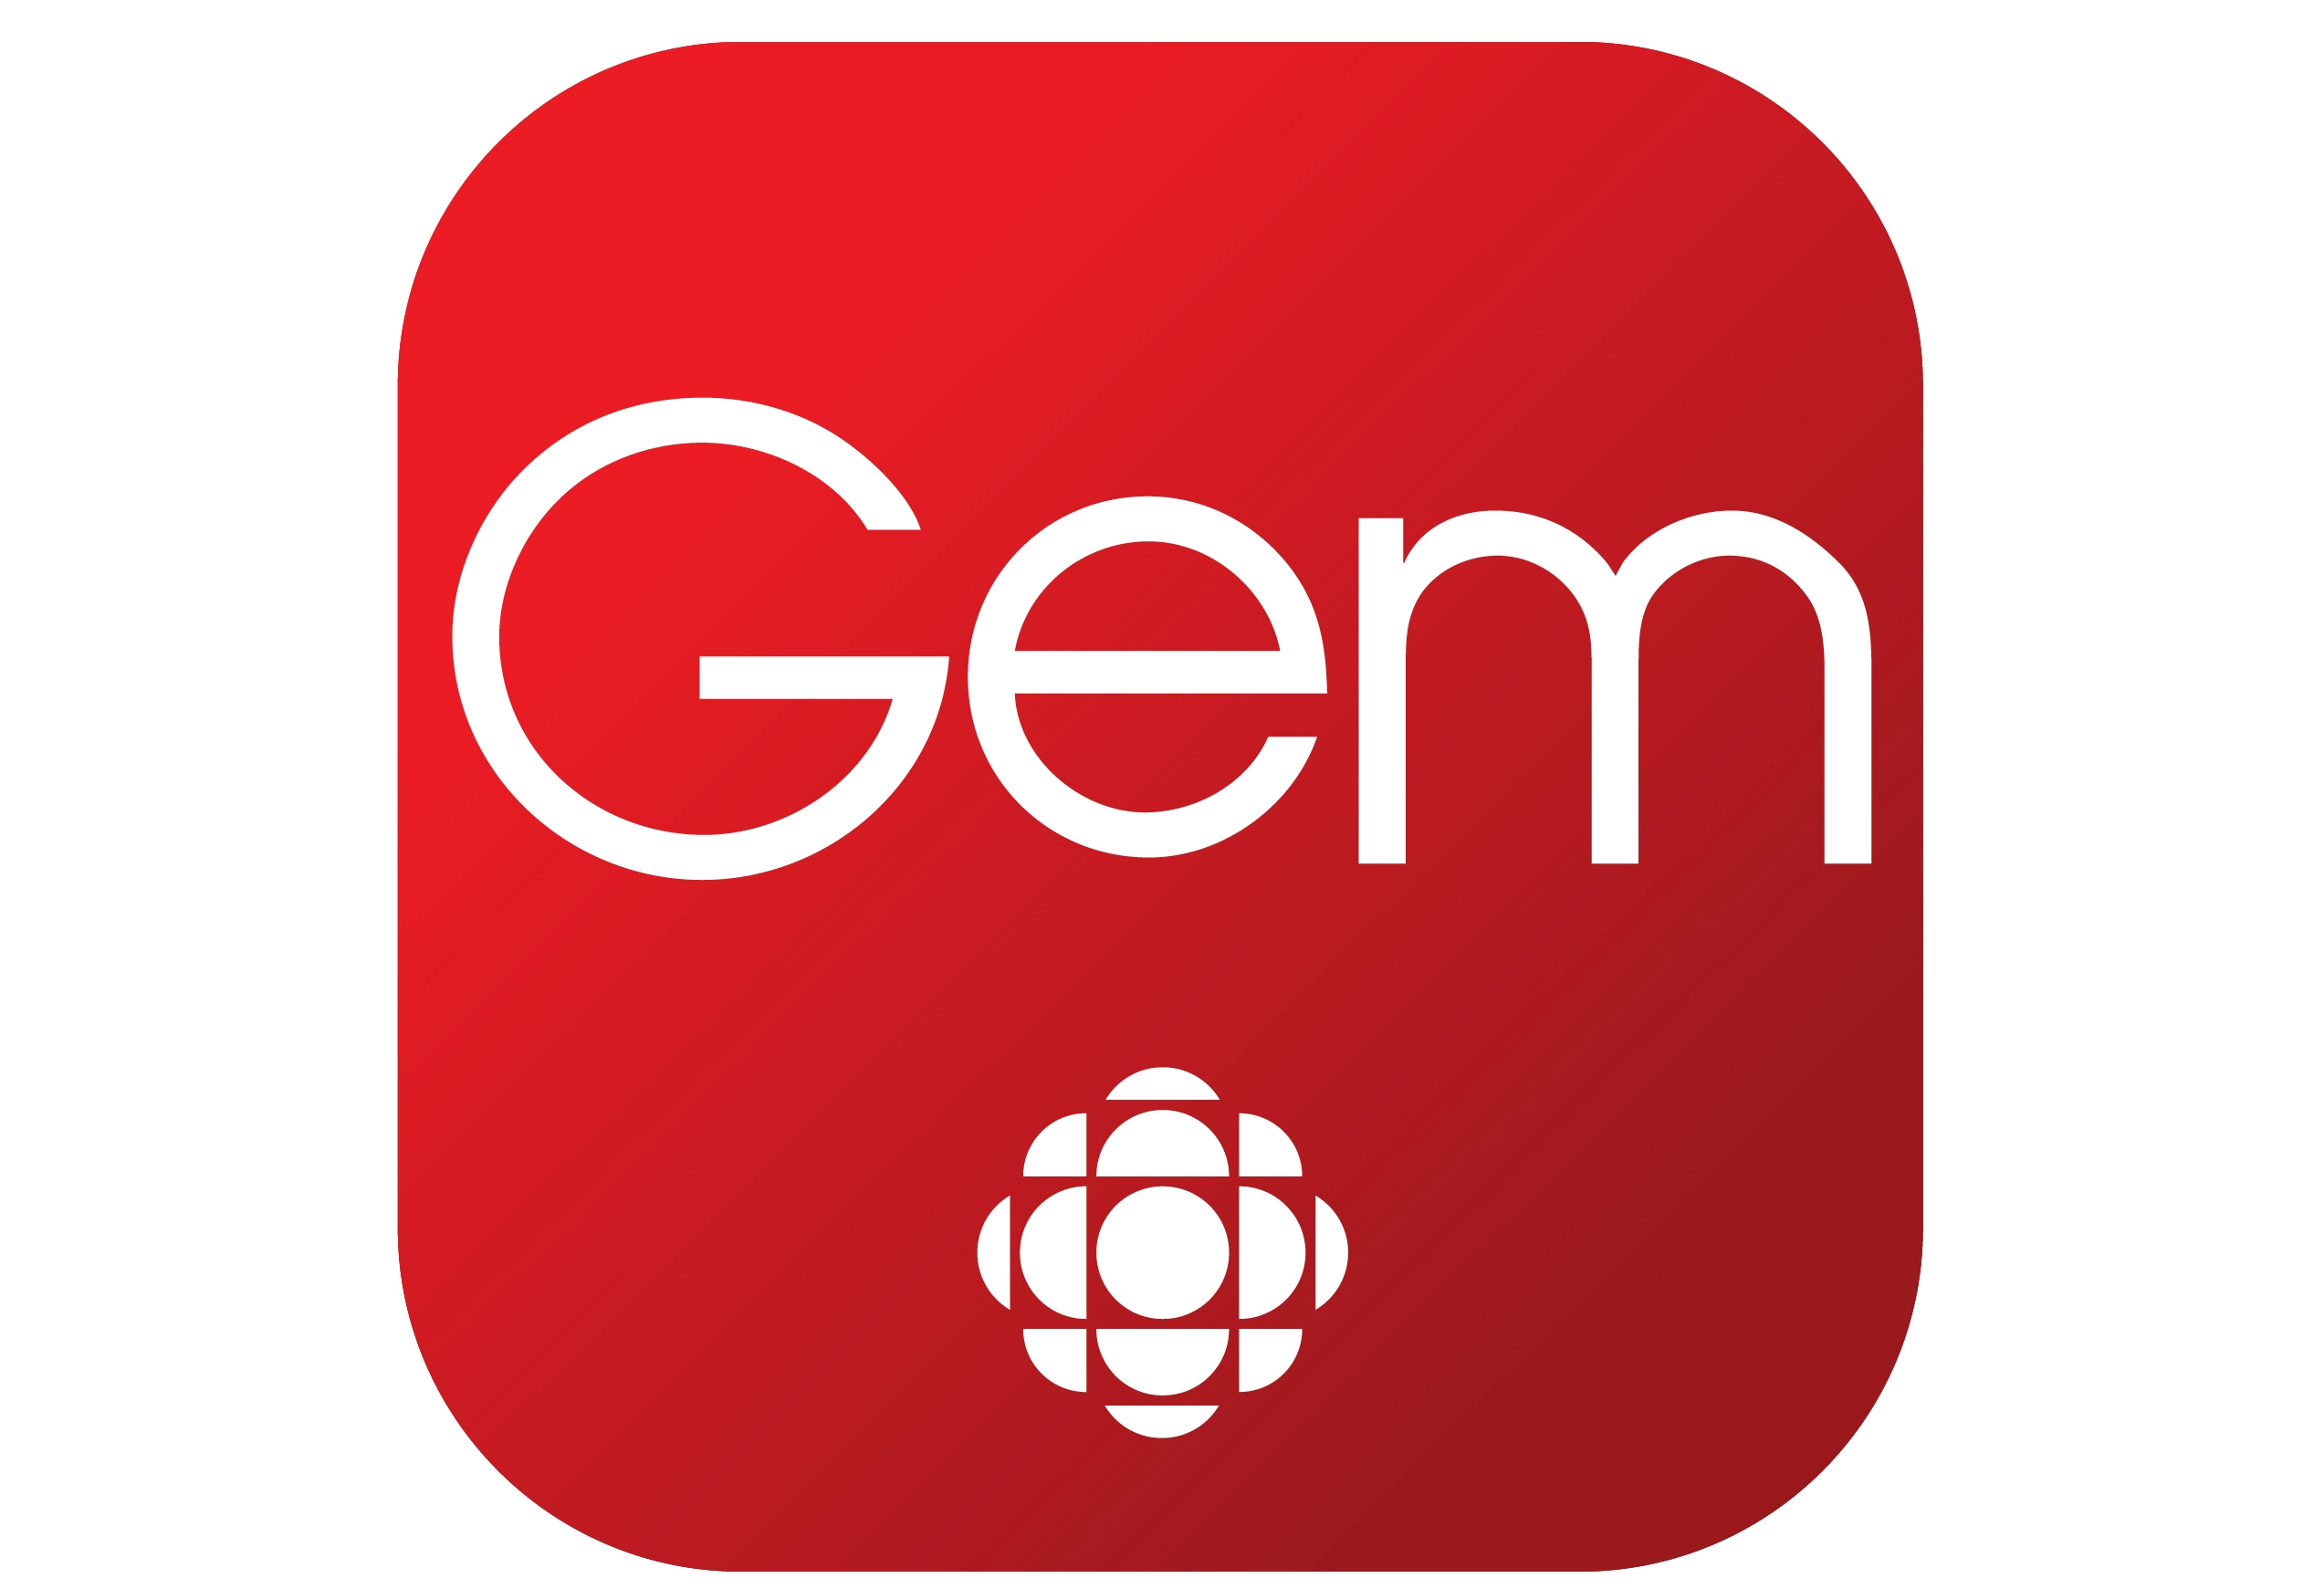 CANADA'S PUBLIC BROADCASTER LAUNCHES CBC GEM STREAMING SERVICE WITH MORE THAN 4000 HOURS OF LIVE AND ON-DEMAND PROGRAMMING AVAILABLE FOR FREE